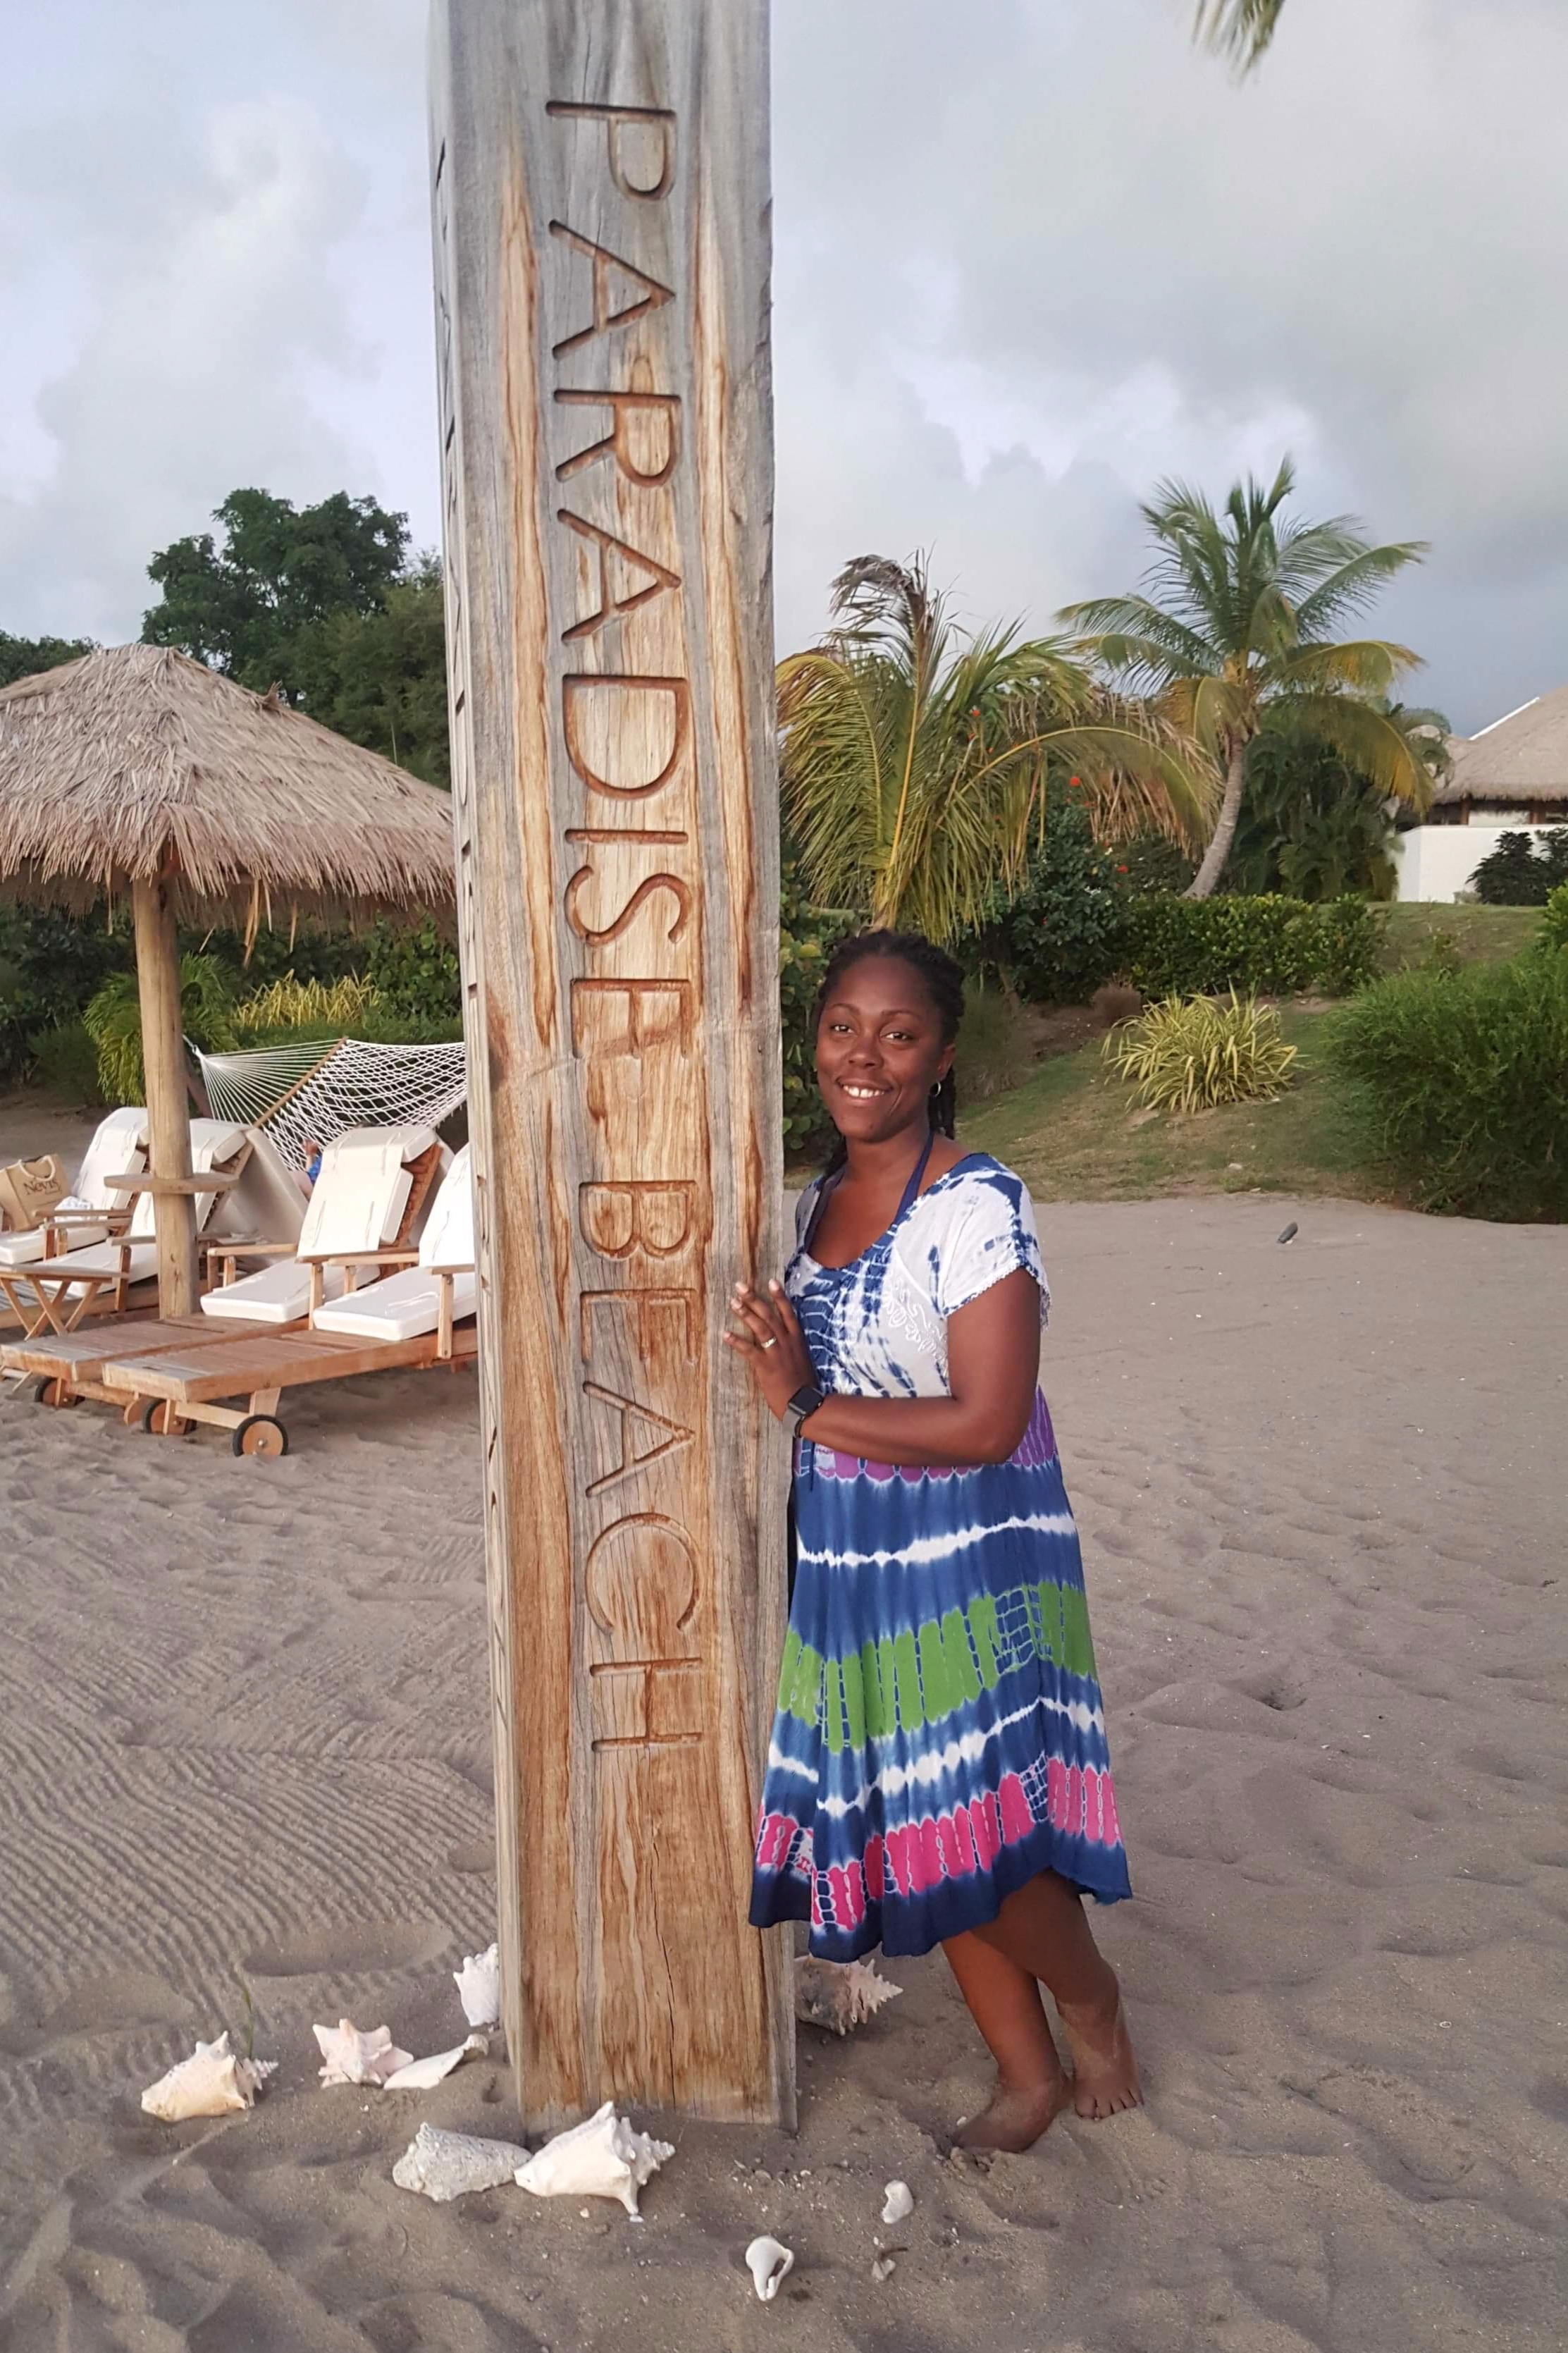 Jackie at Paradise Beach in Nevis (sister island to St. Kitts)